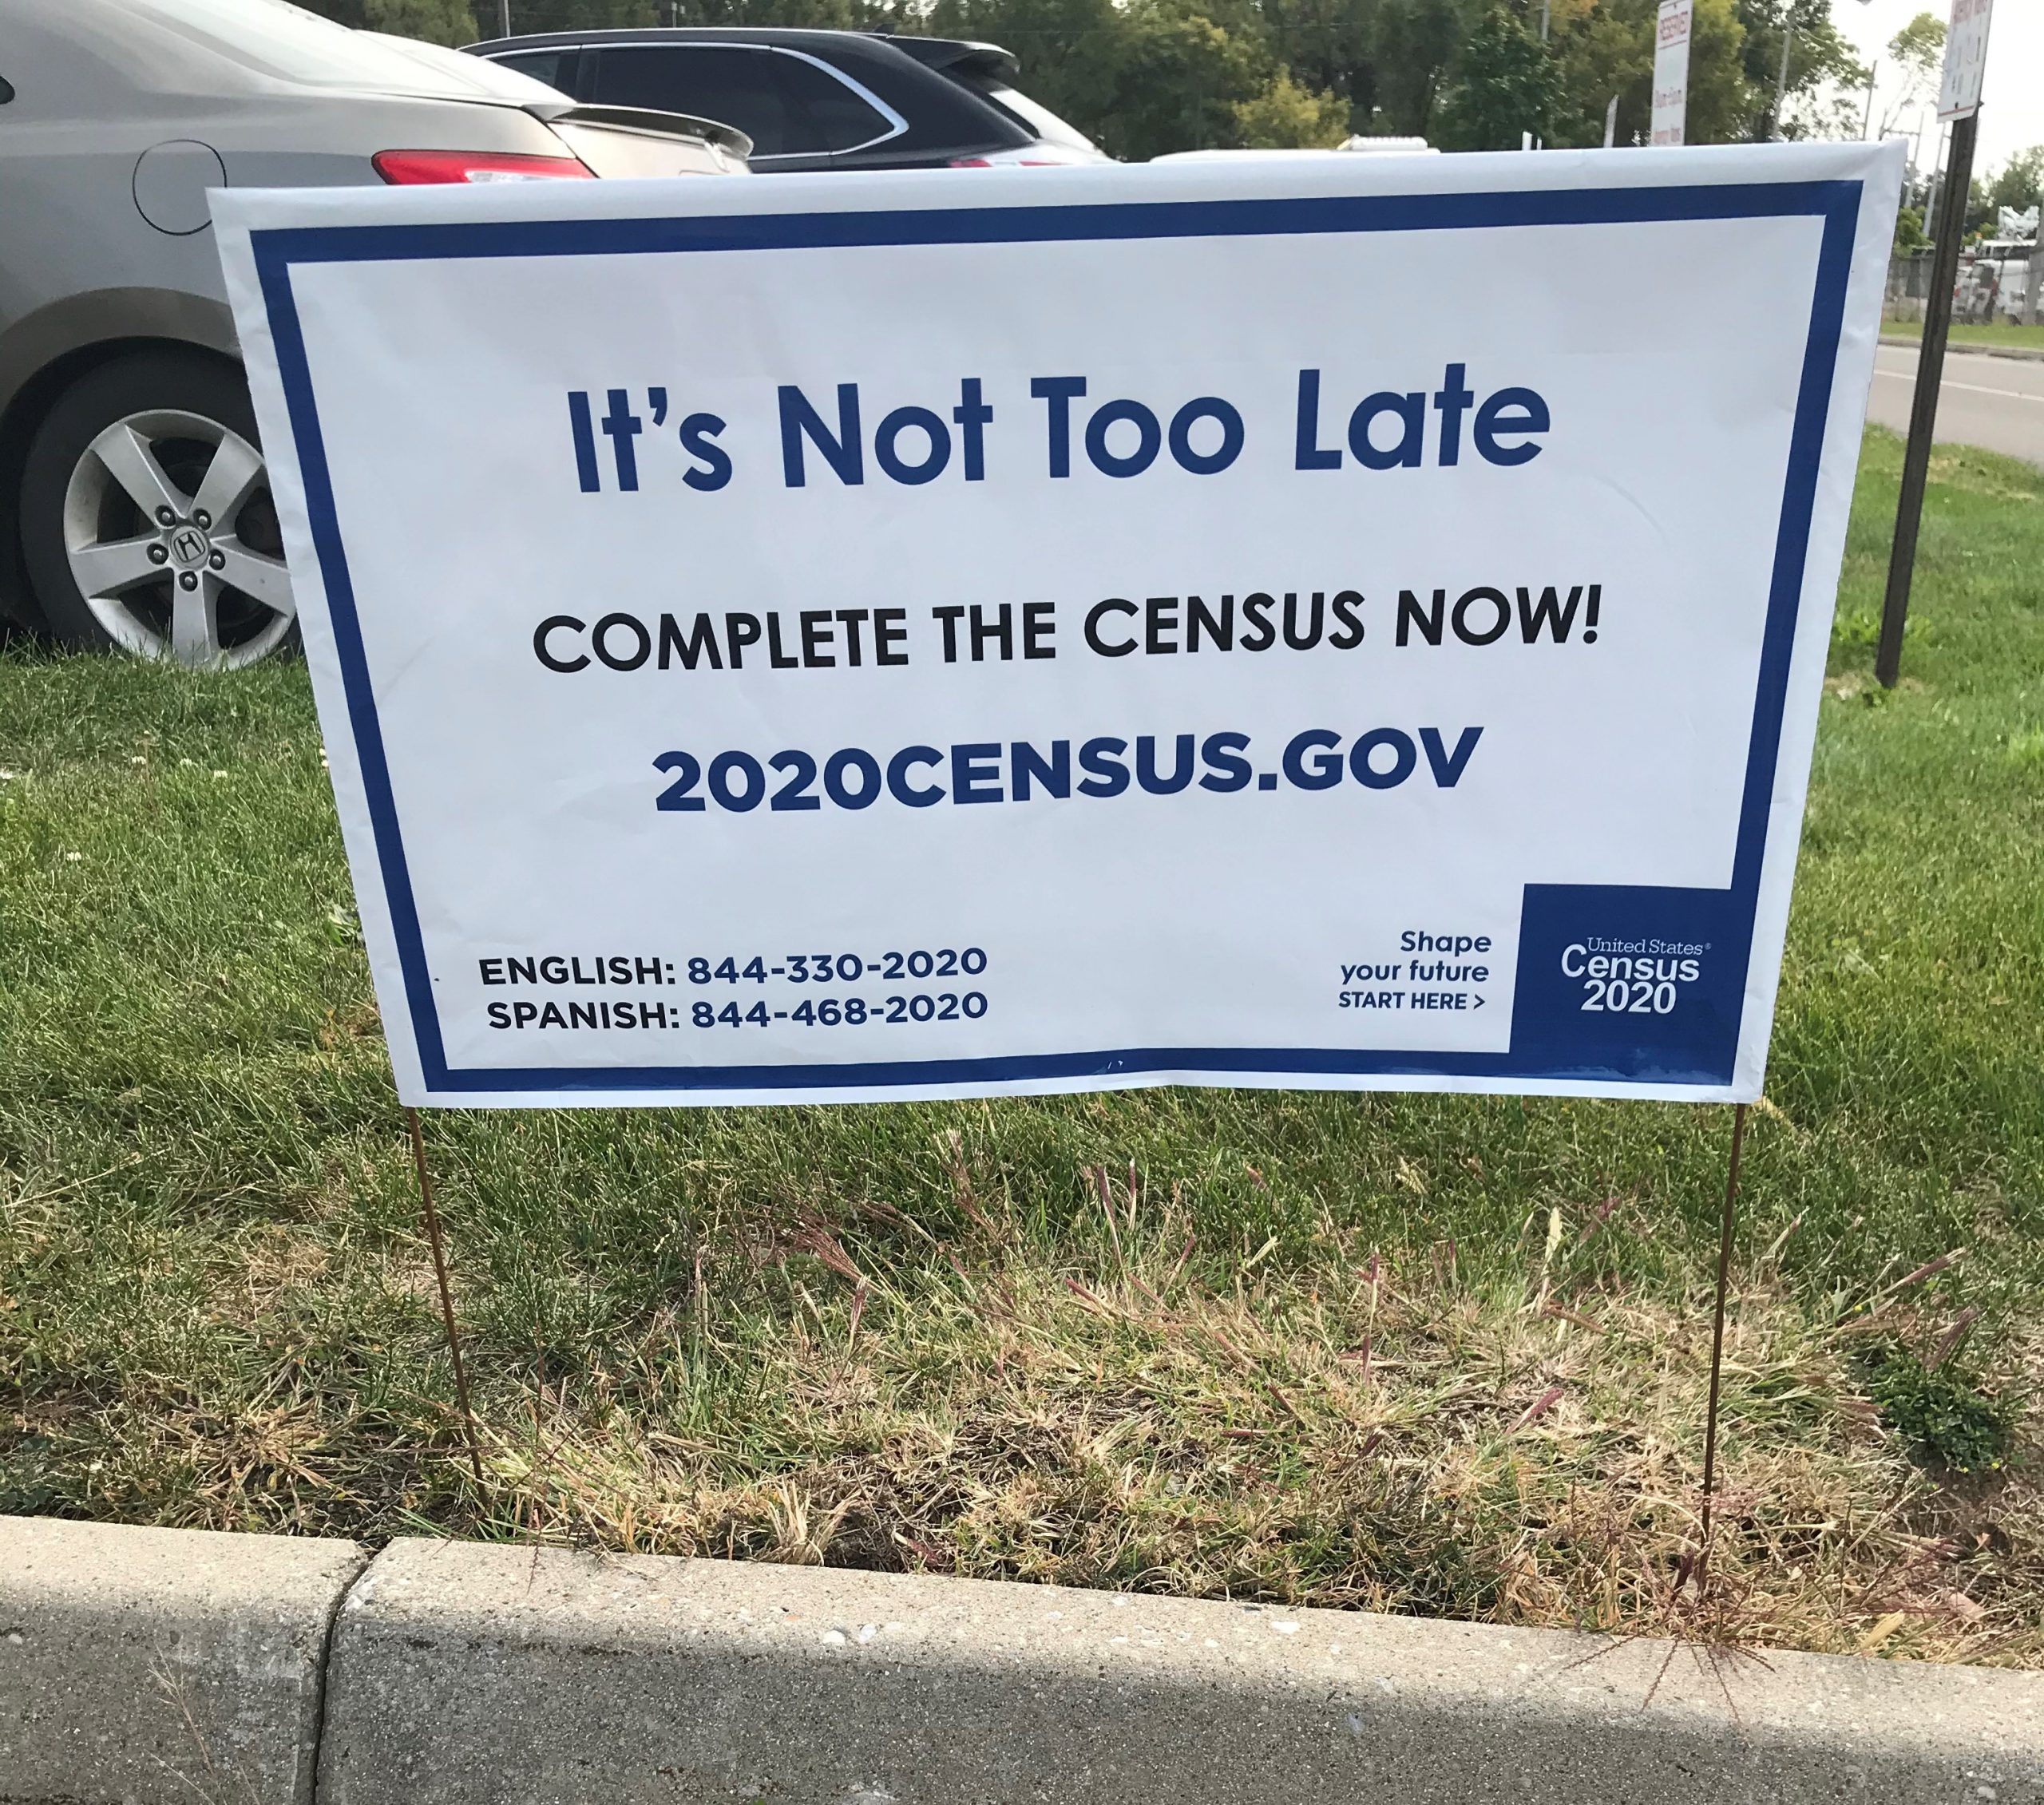 Columbus Counts 2020 Census Grant Enhances Grab-and-Go and Drive-Thru Services at LifeCare Alliance!